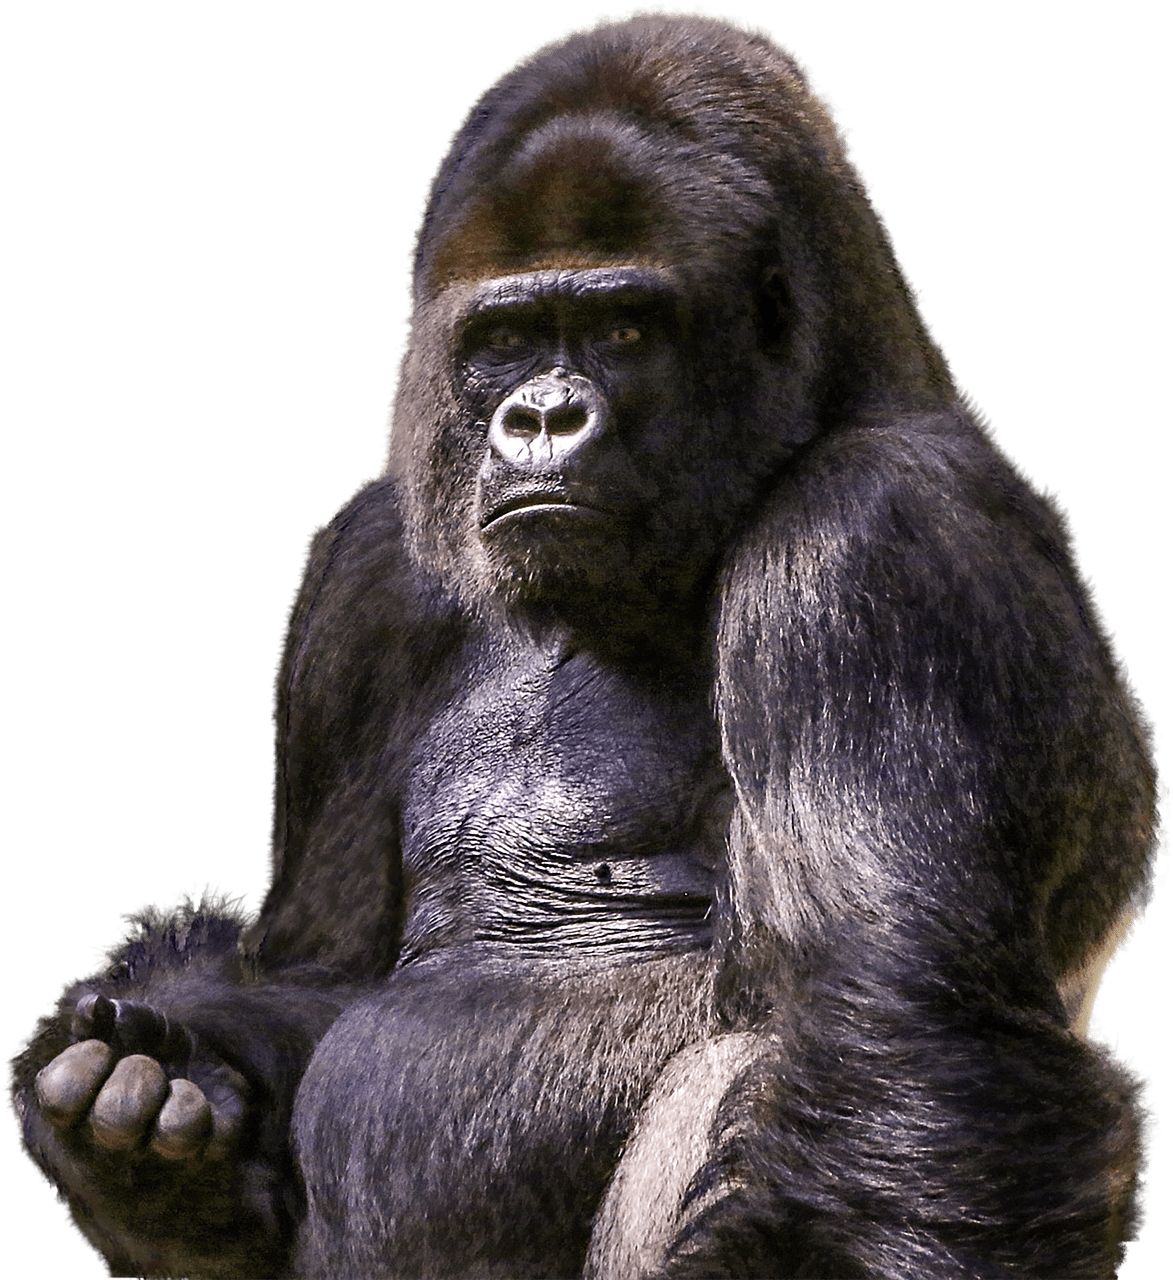 Gorilla face png. Sitting transparent stickpng animals